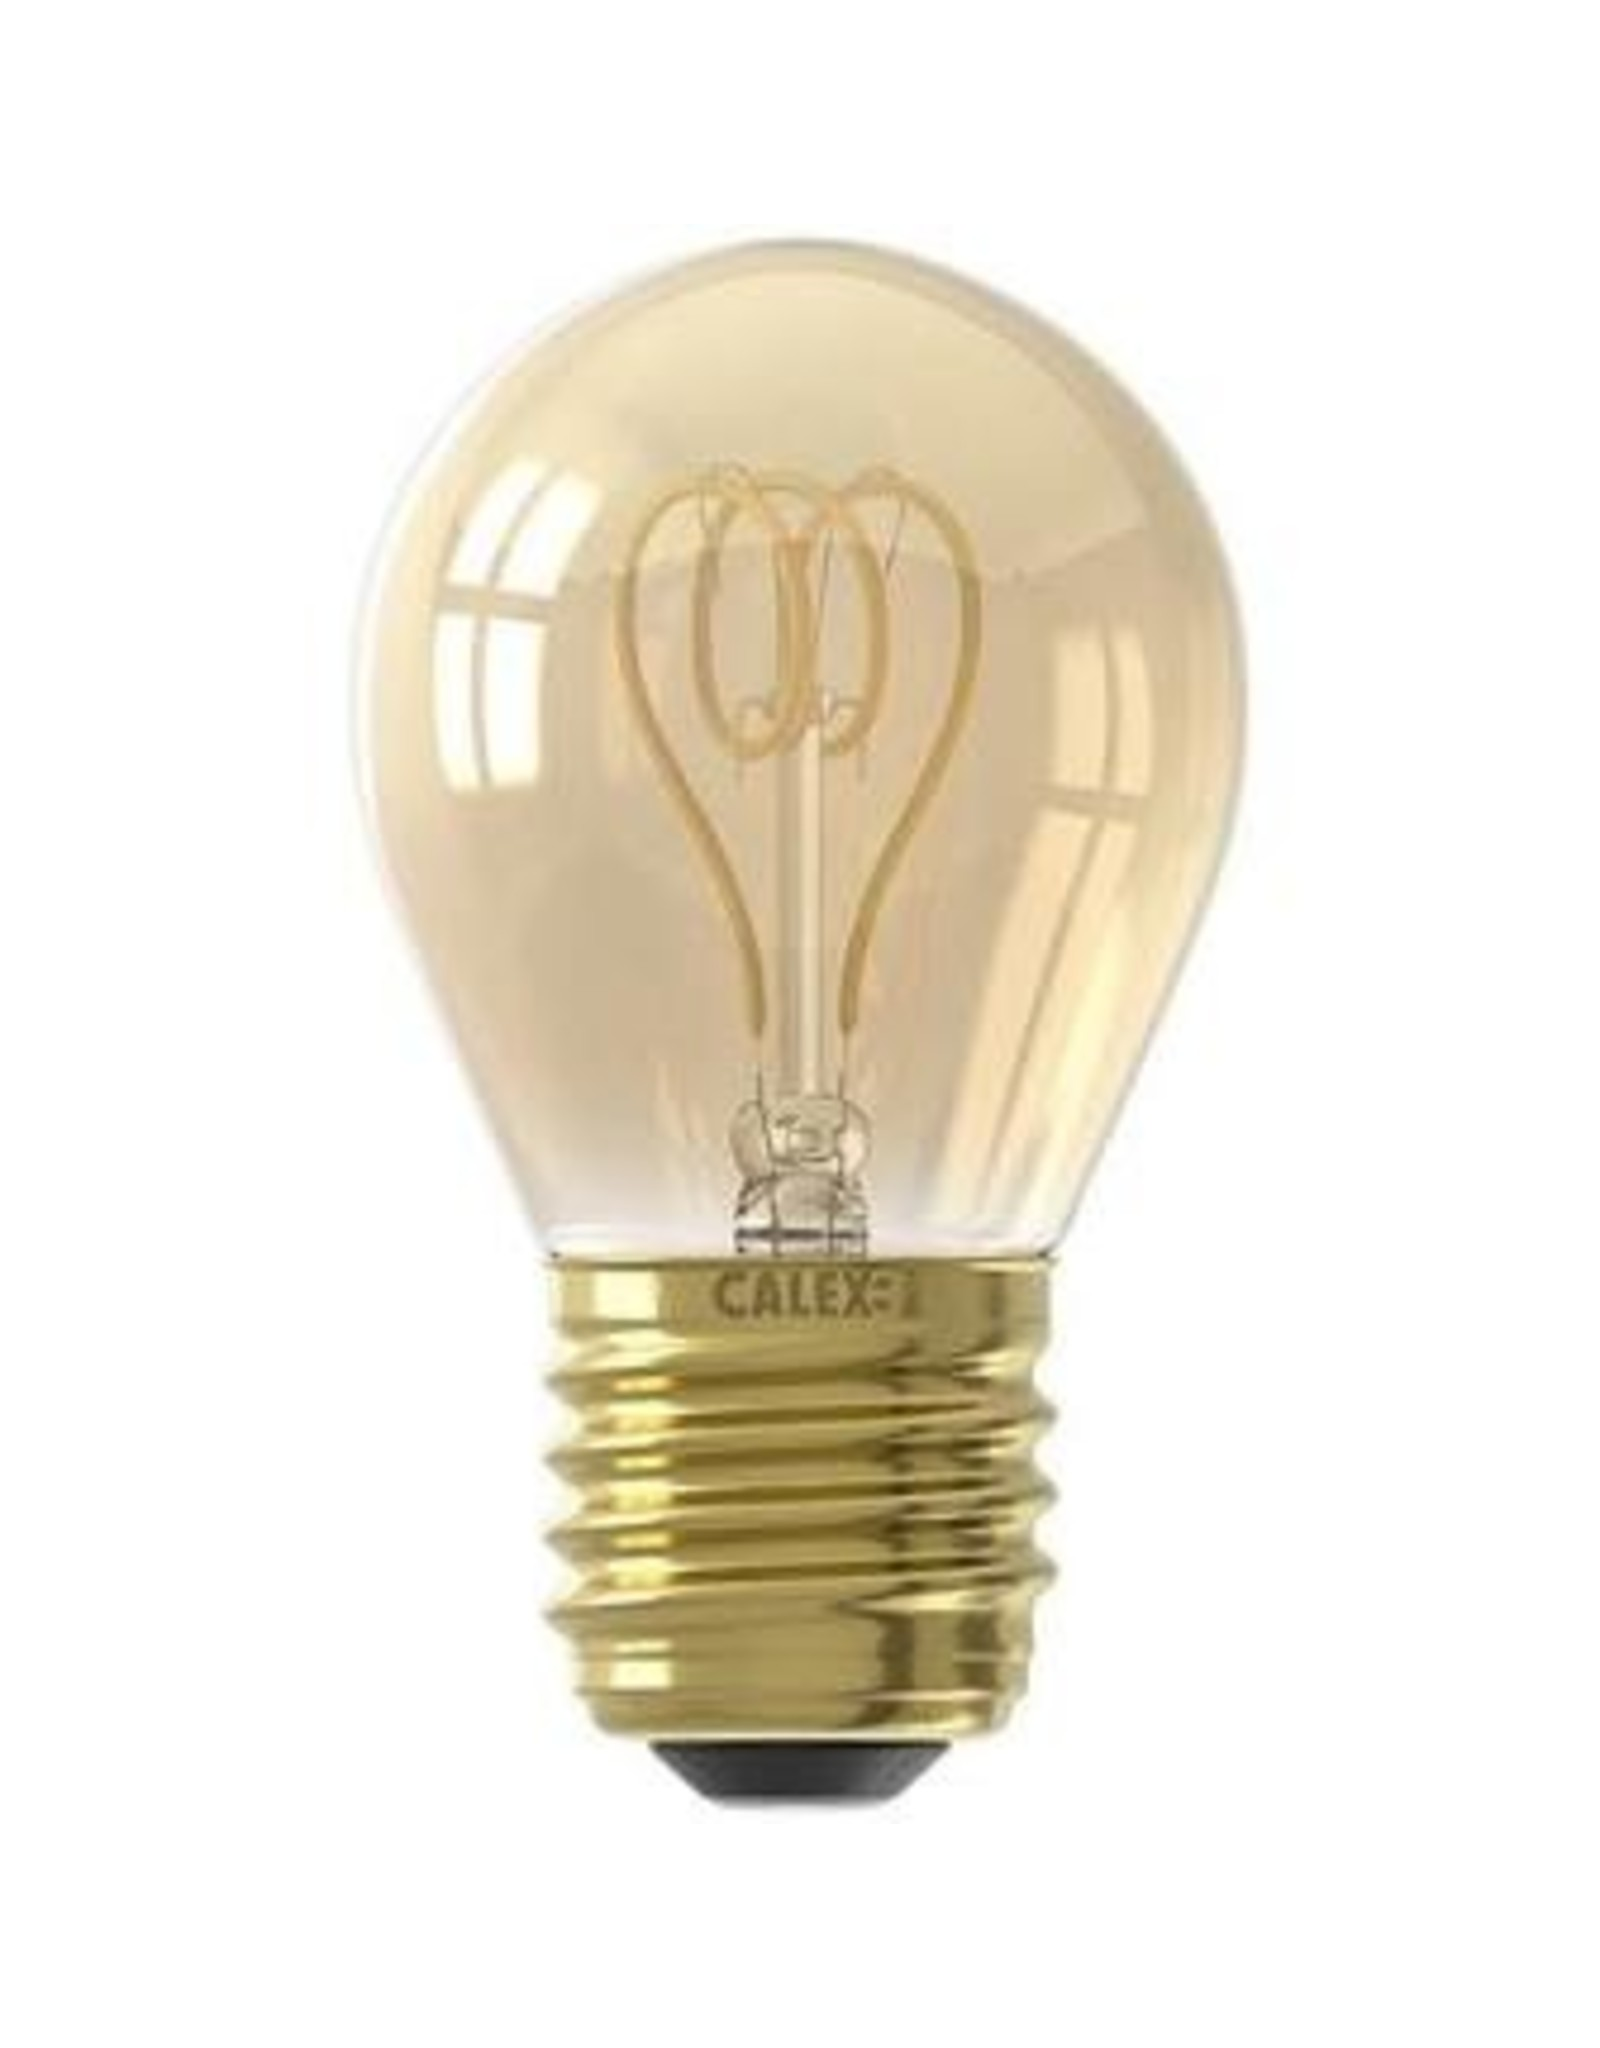 Calex LED Flex Filament Ball lamp P45 220-240V 4W E27 120lm 2100K Gold, dimmable, energy label B